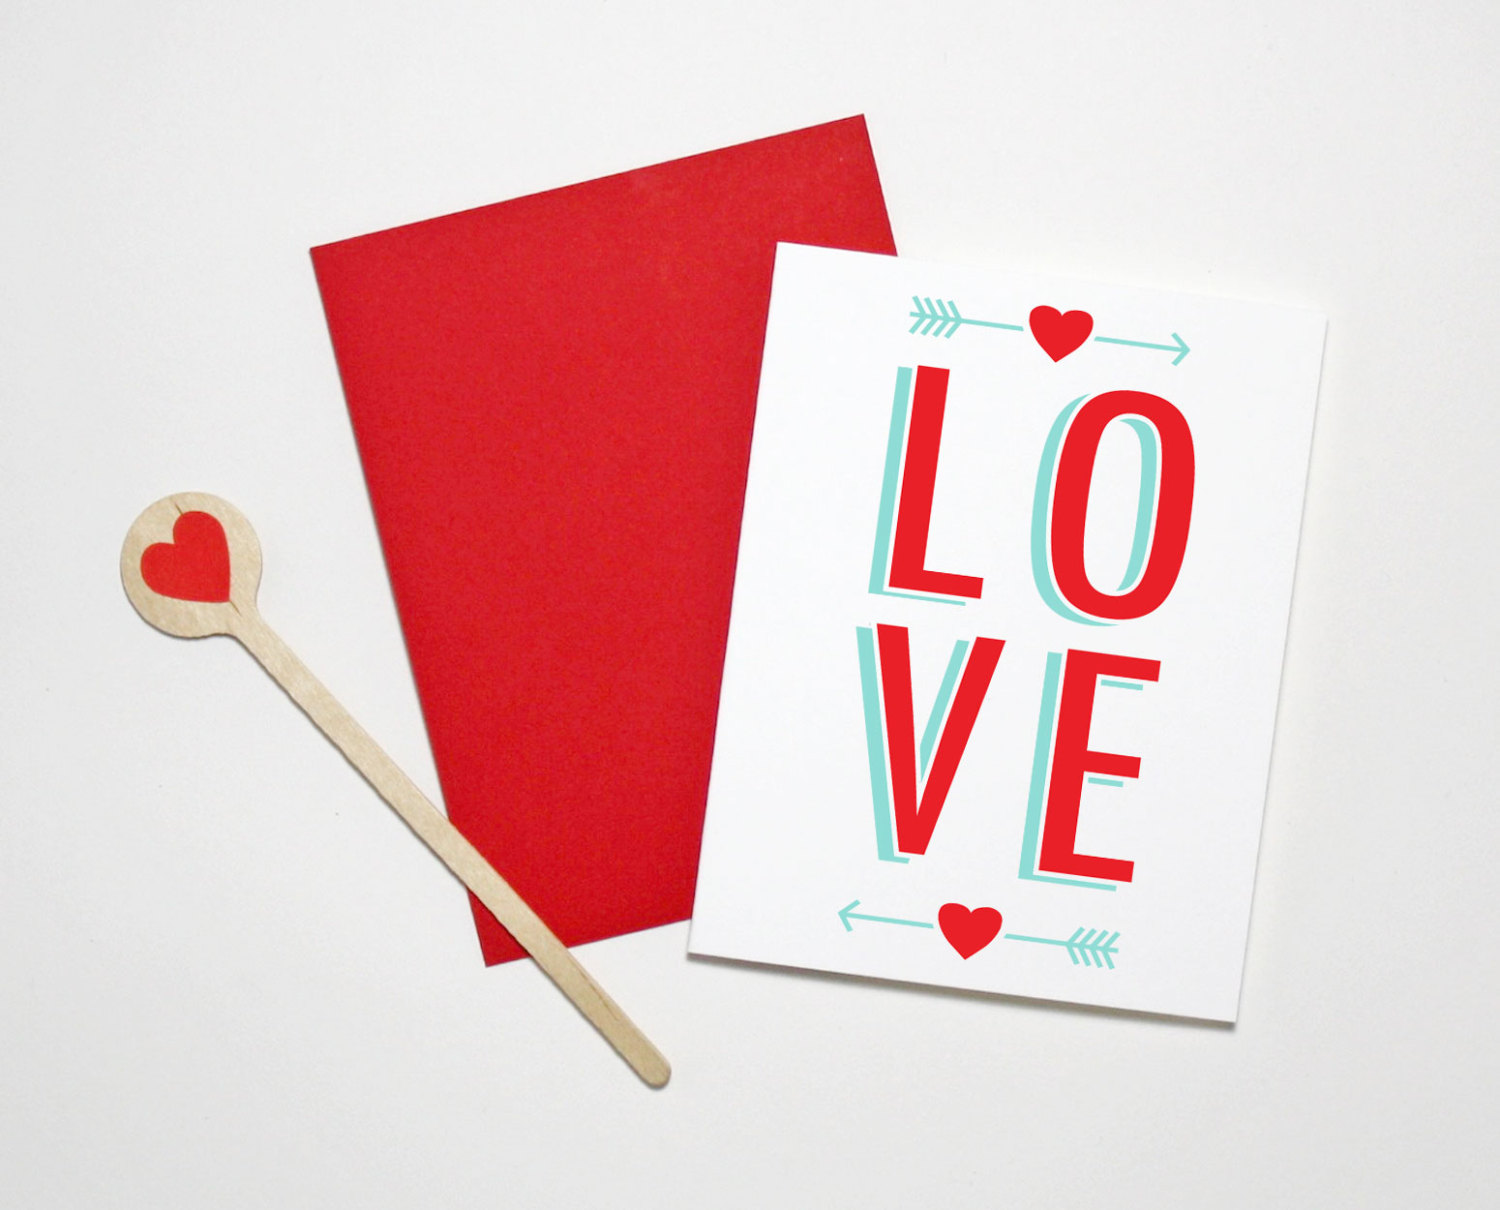 The Paper Cub screen printed Valentine's Day card